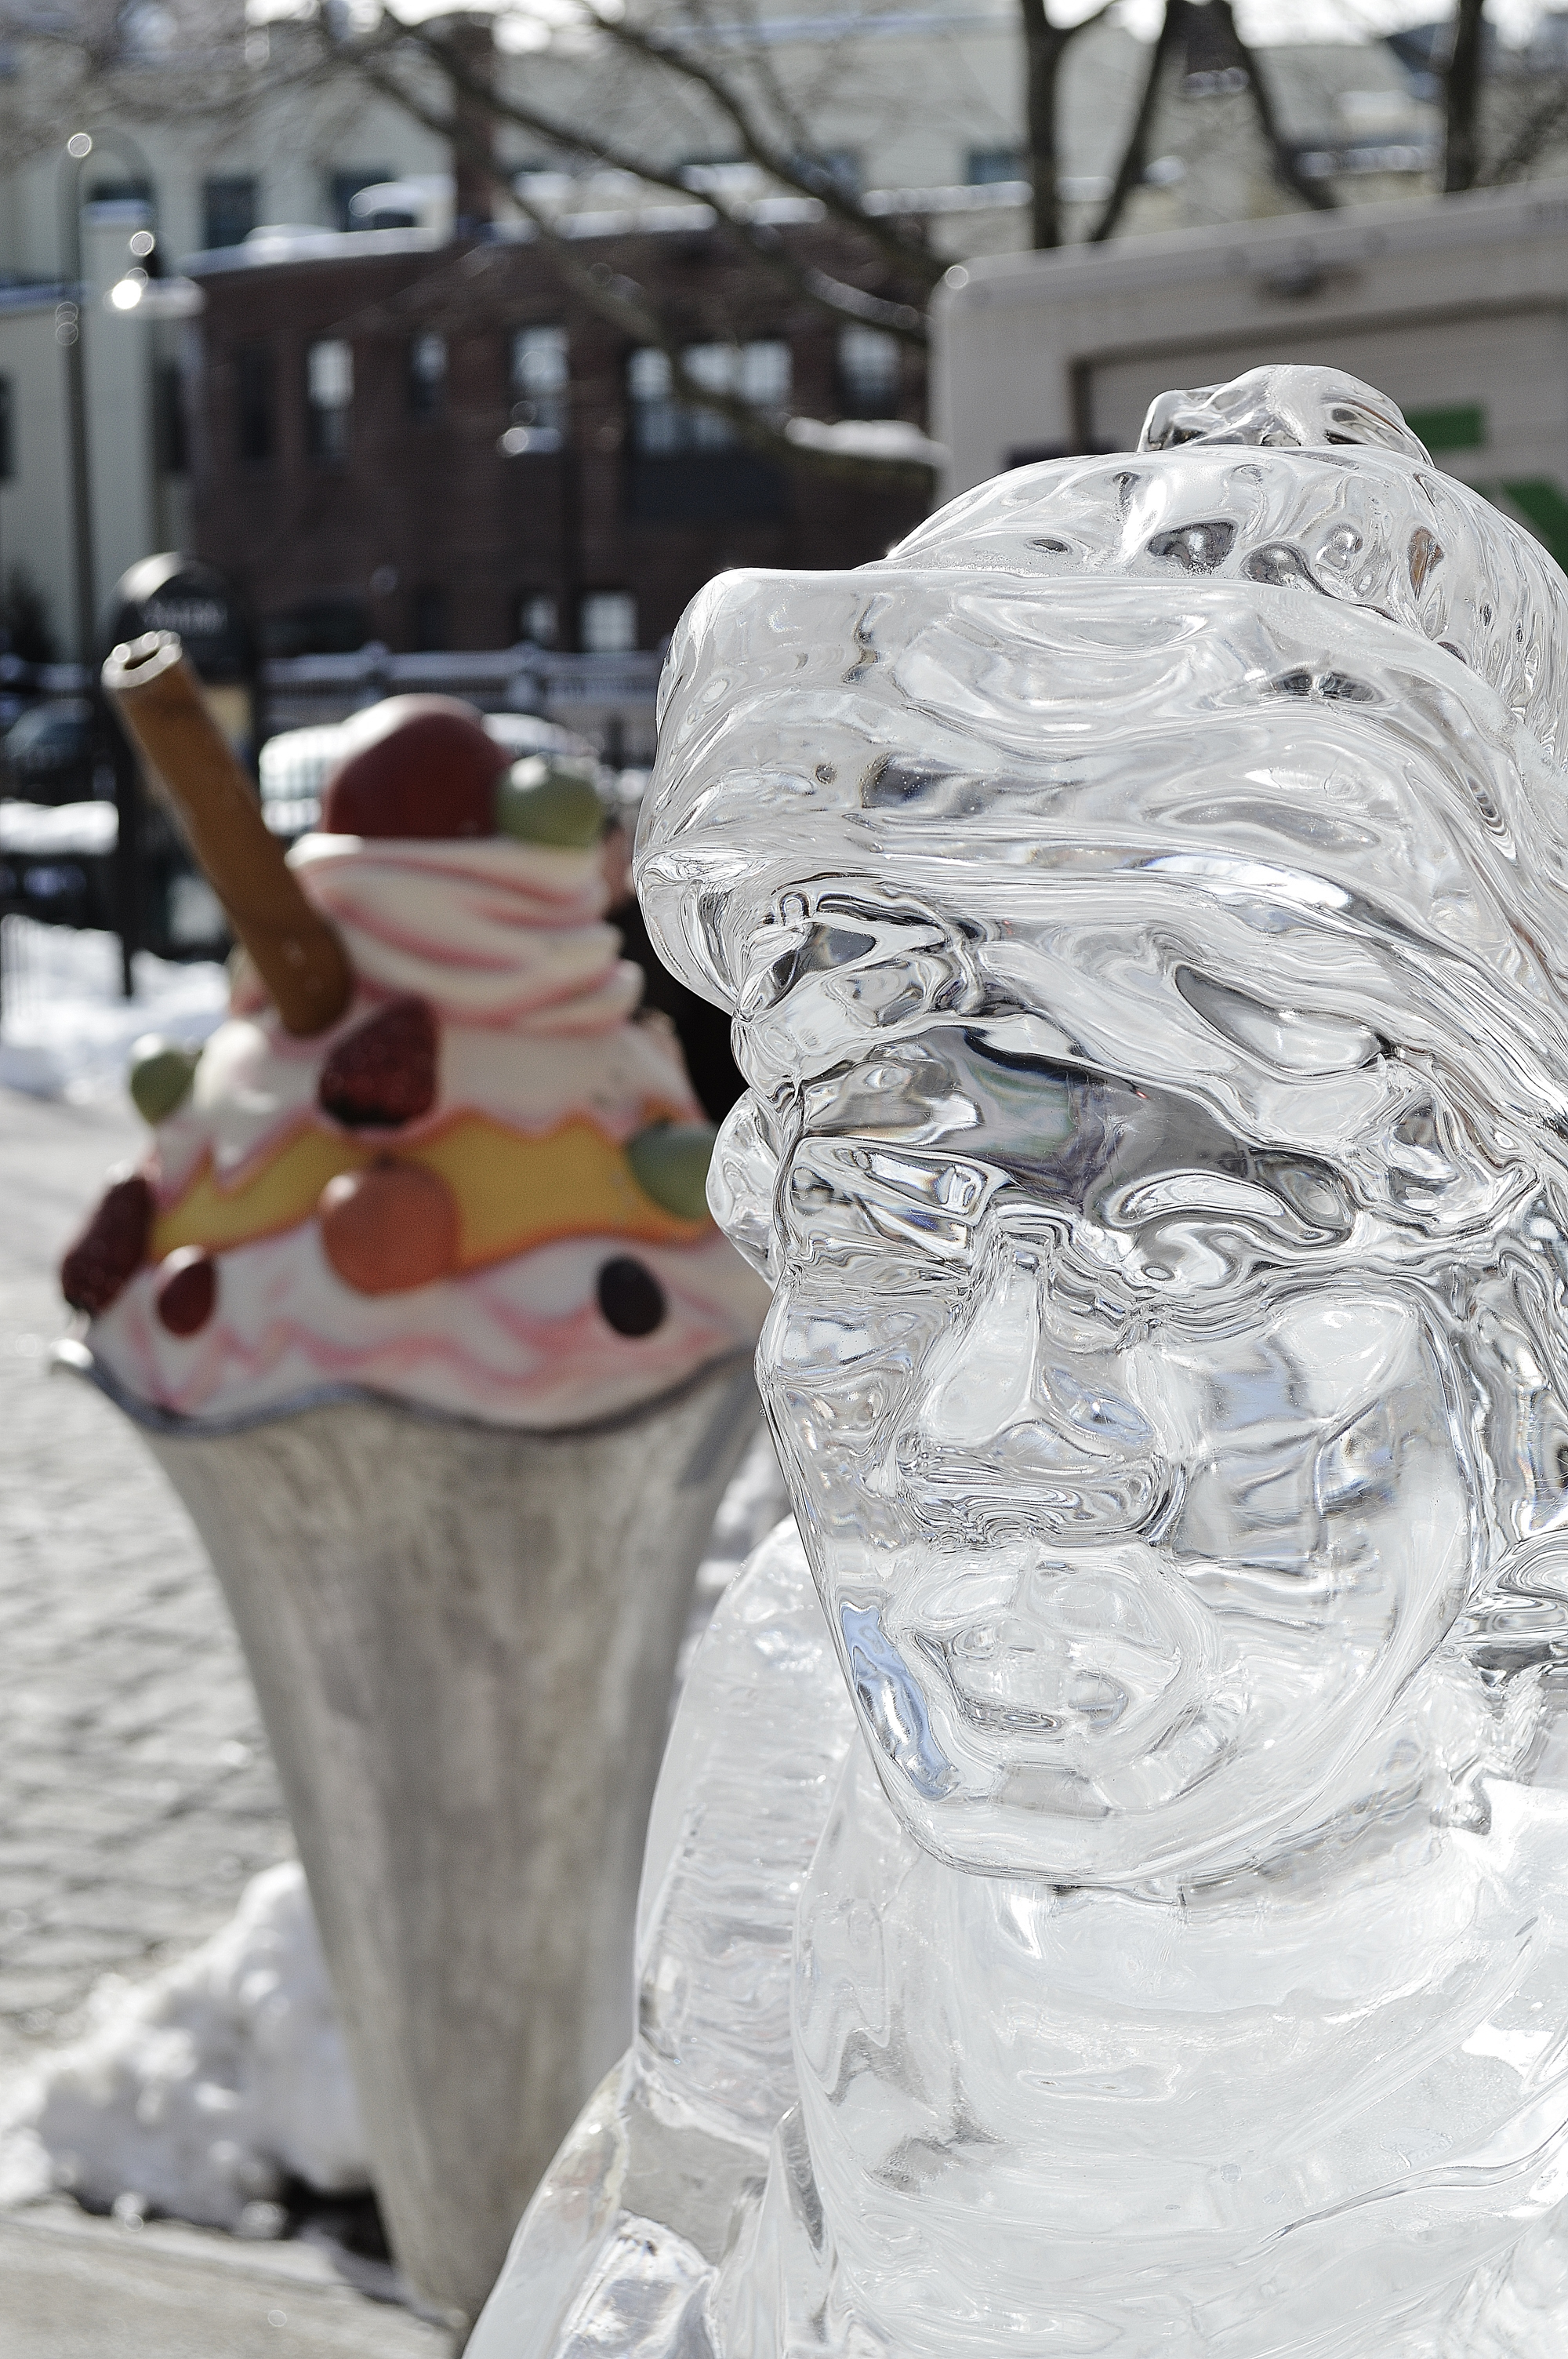 Salem's So Sweet Chocolate and Ice Sculpture Festival Ice Skater sculpture smaller